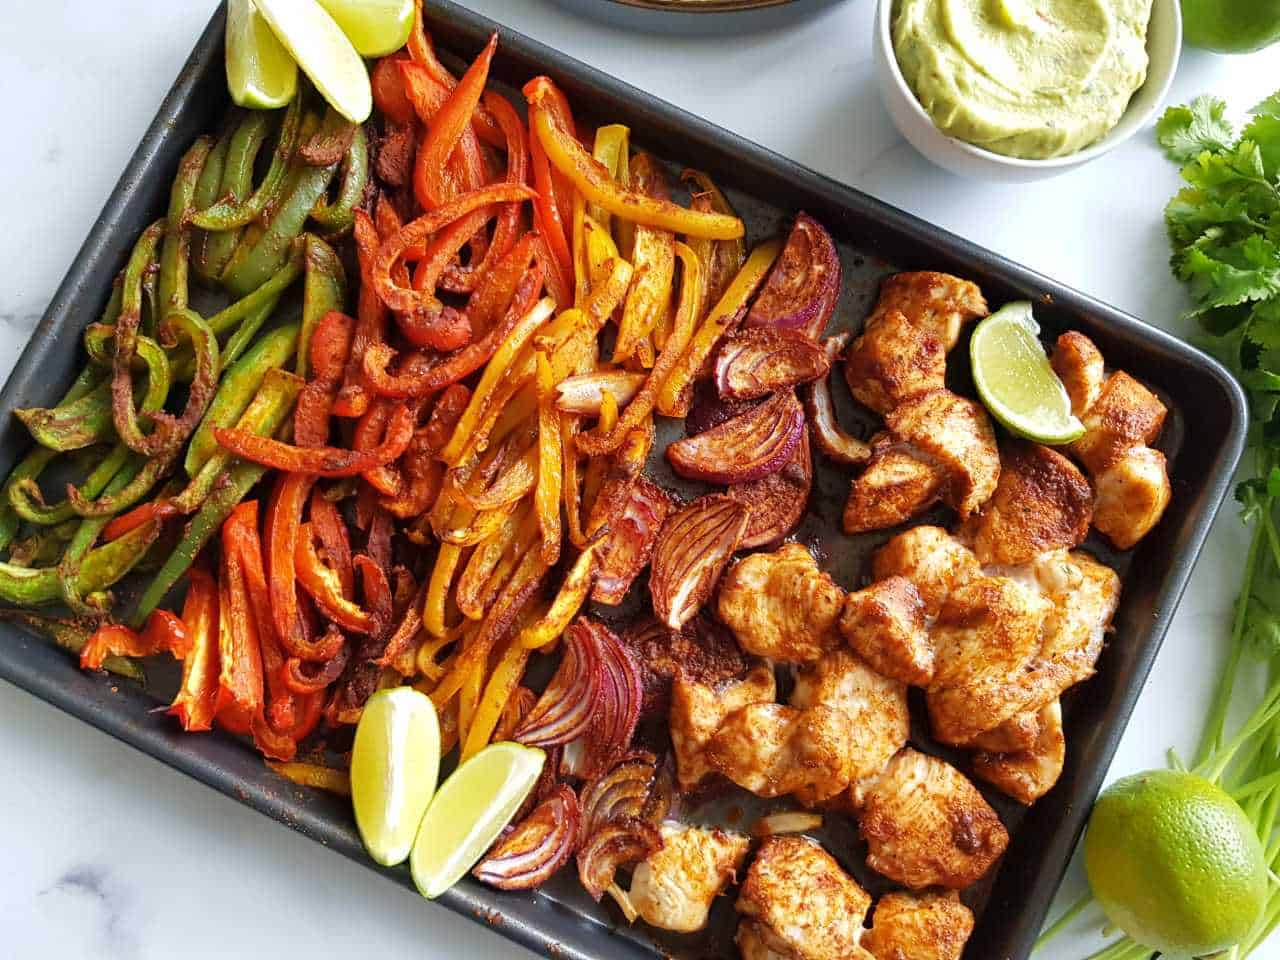 Sheet pan fajitas on a marble table with guacamole, cilantro and lime wedges on the side.